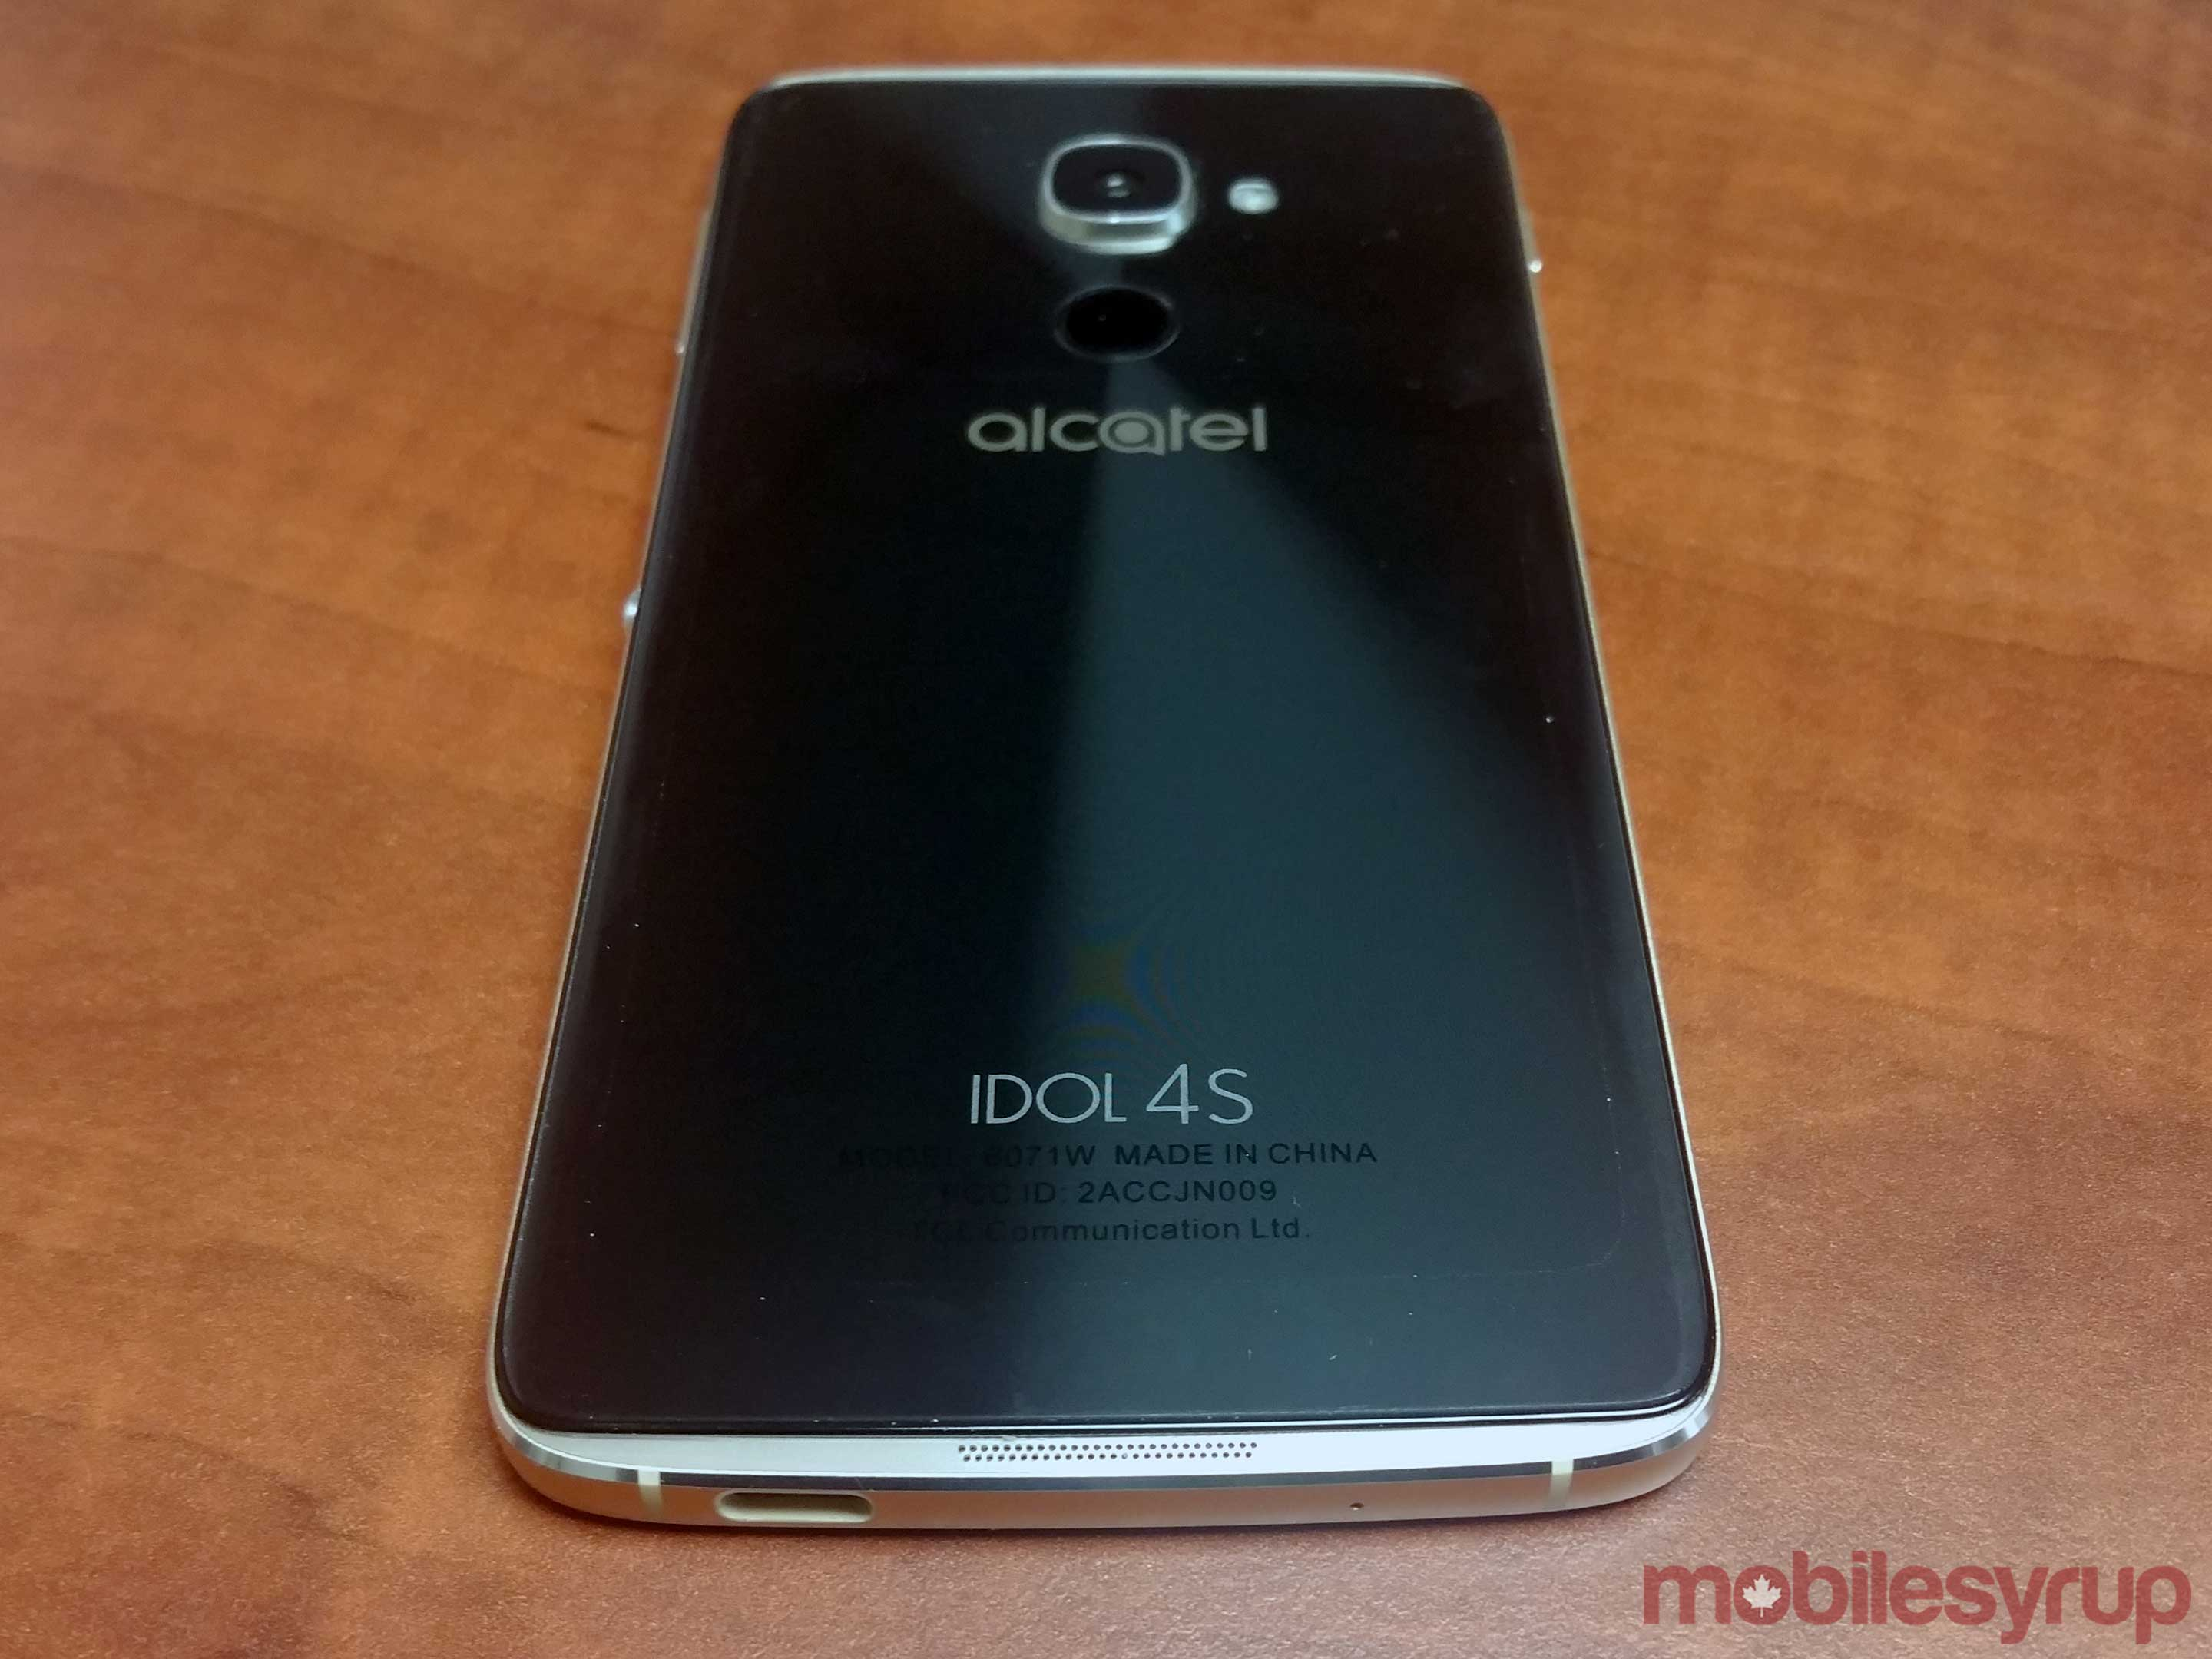 Back of Alcatel Idol 4S